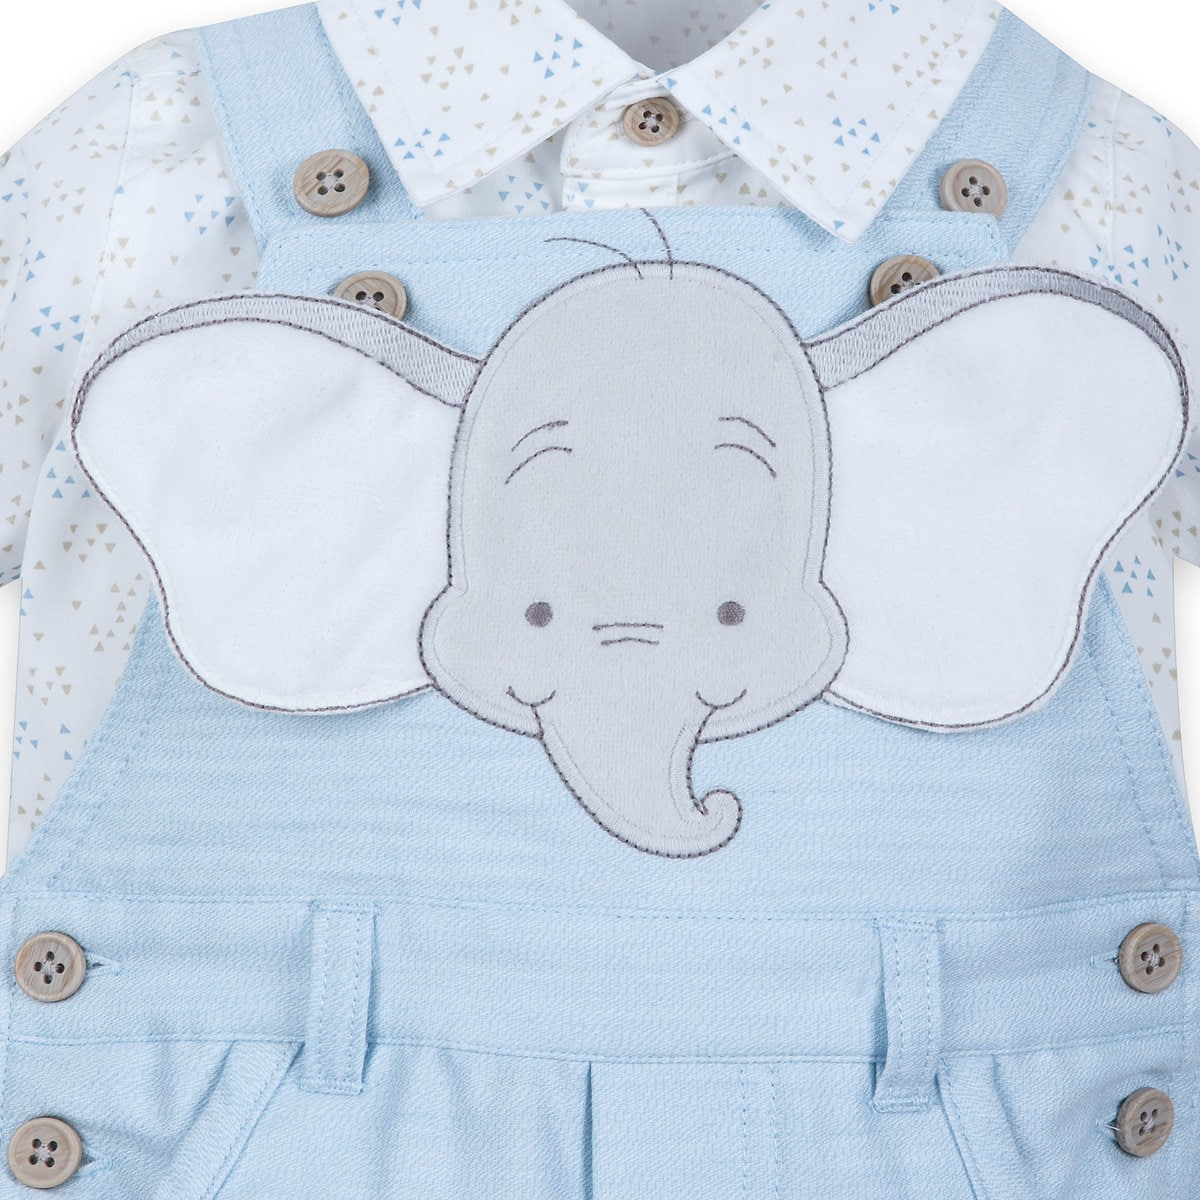 6578799baedae Dumbo Dungaree Set for Baby | shopDisney